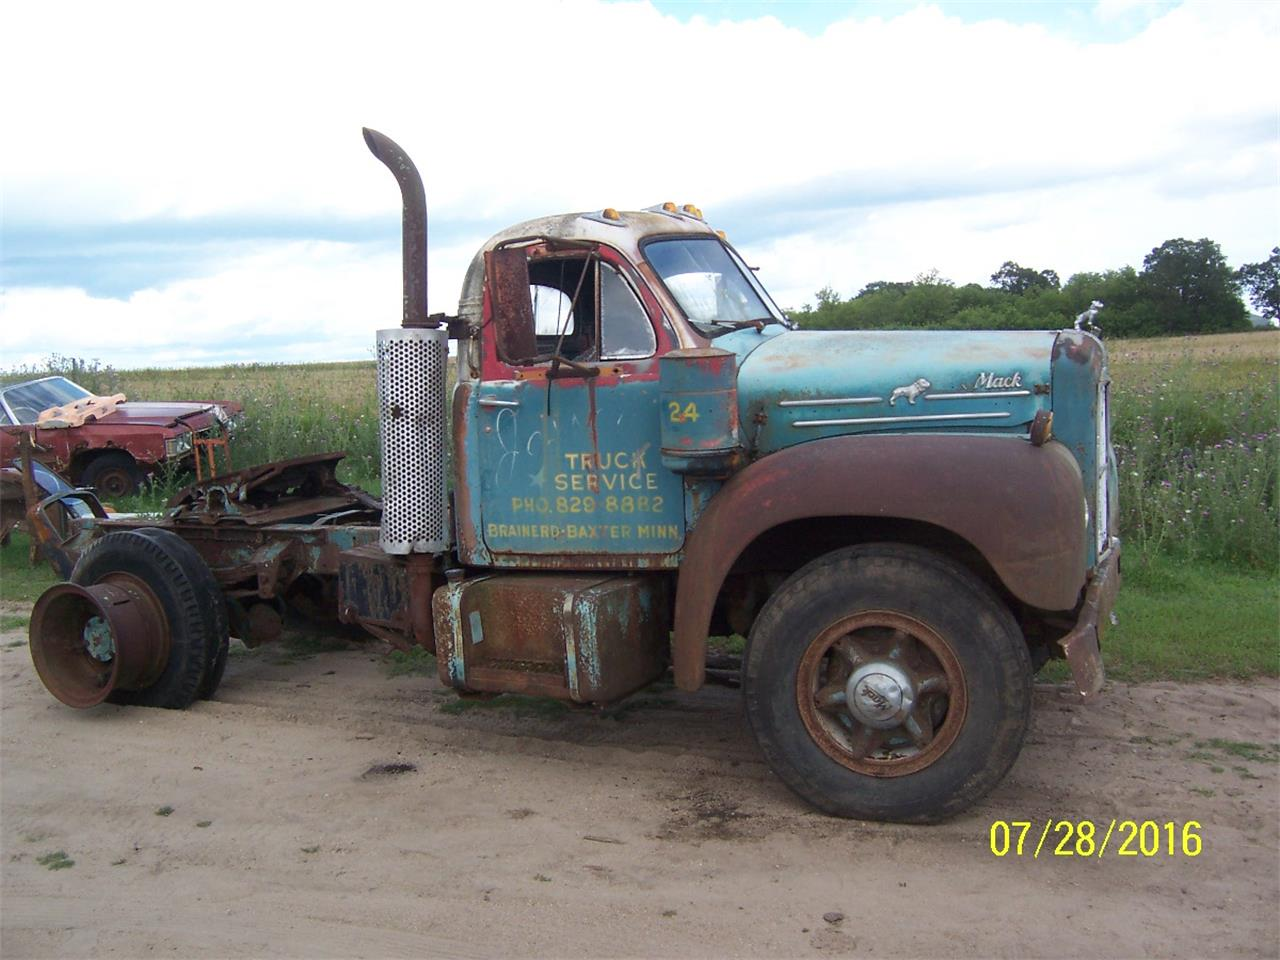 Mack Trucks For Sale >> 1957 Mack B61 Truck For Sale Classiccars Com Cc 975508